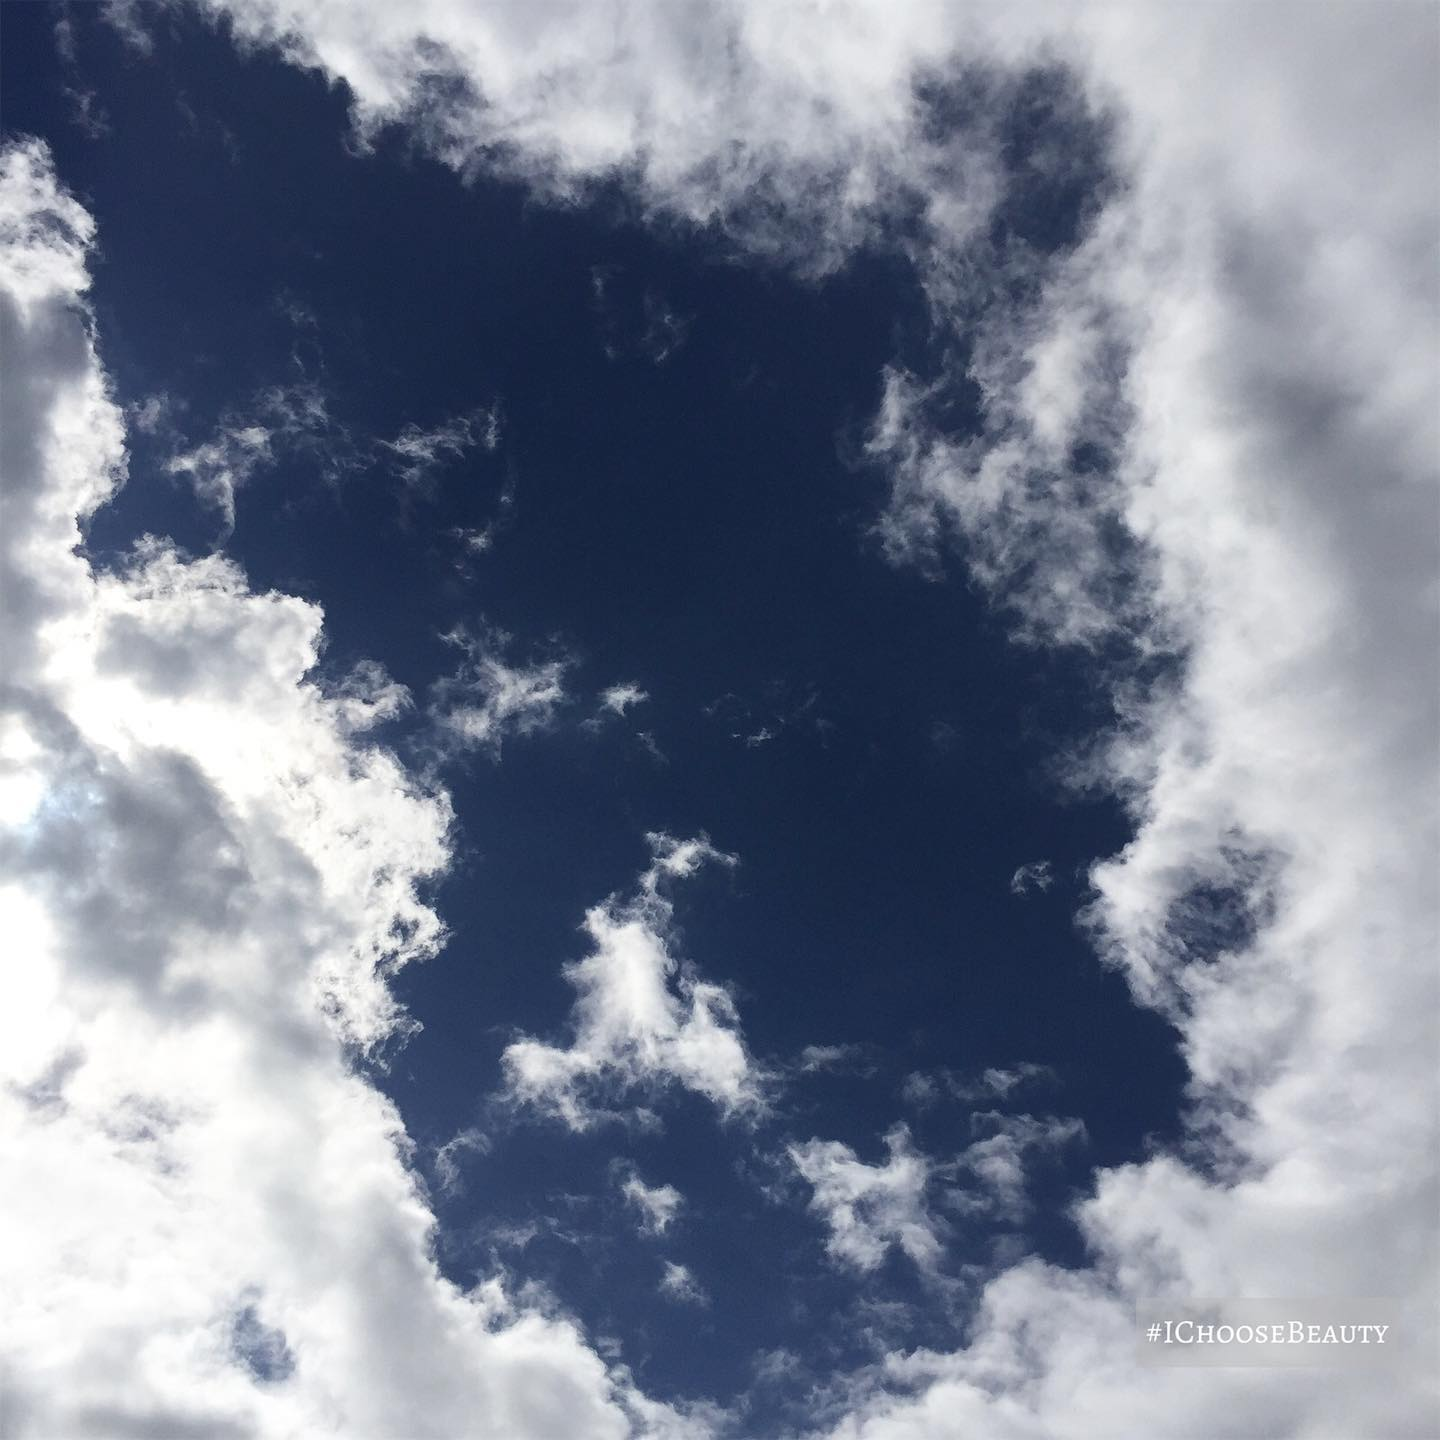 Soooooo obsessed with this cool cloud formation!️️ #ichoosebeauty Day 2643